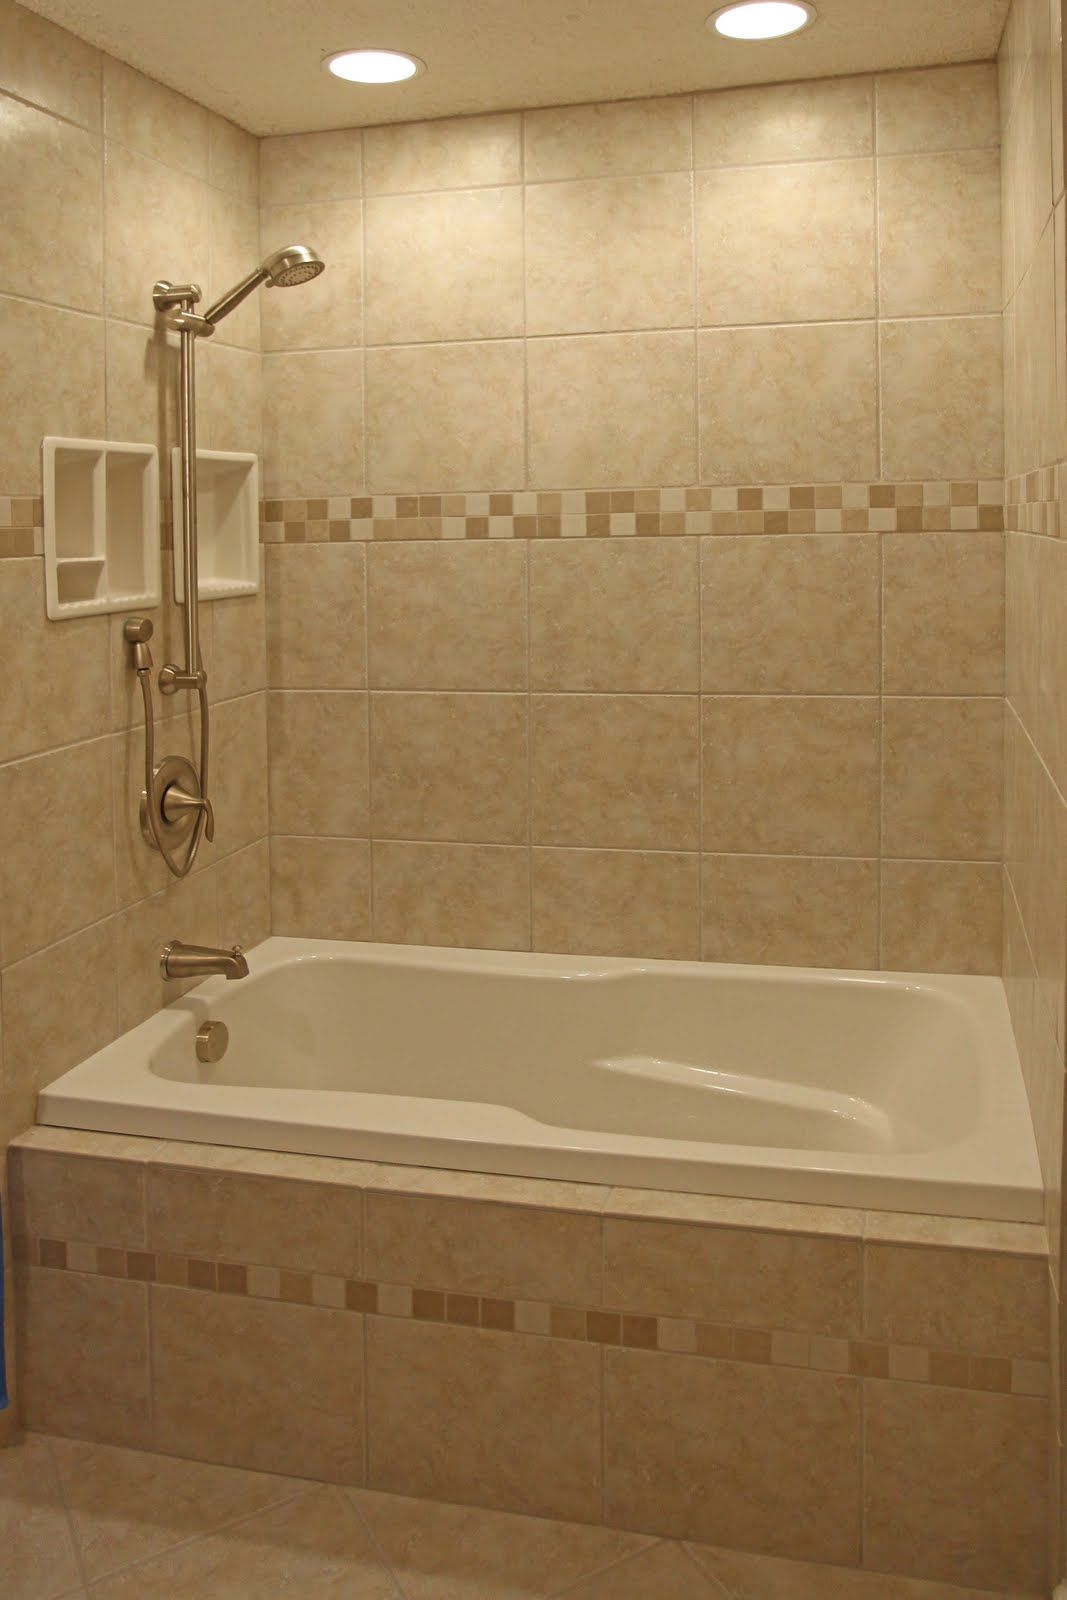 shower and bath remodel | Bathroom Shower Design Ideas  Ceramic Tile  Bathroom Shower Design .